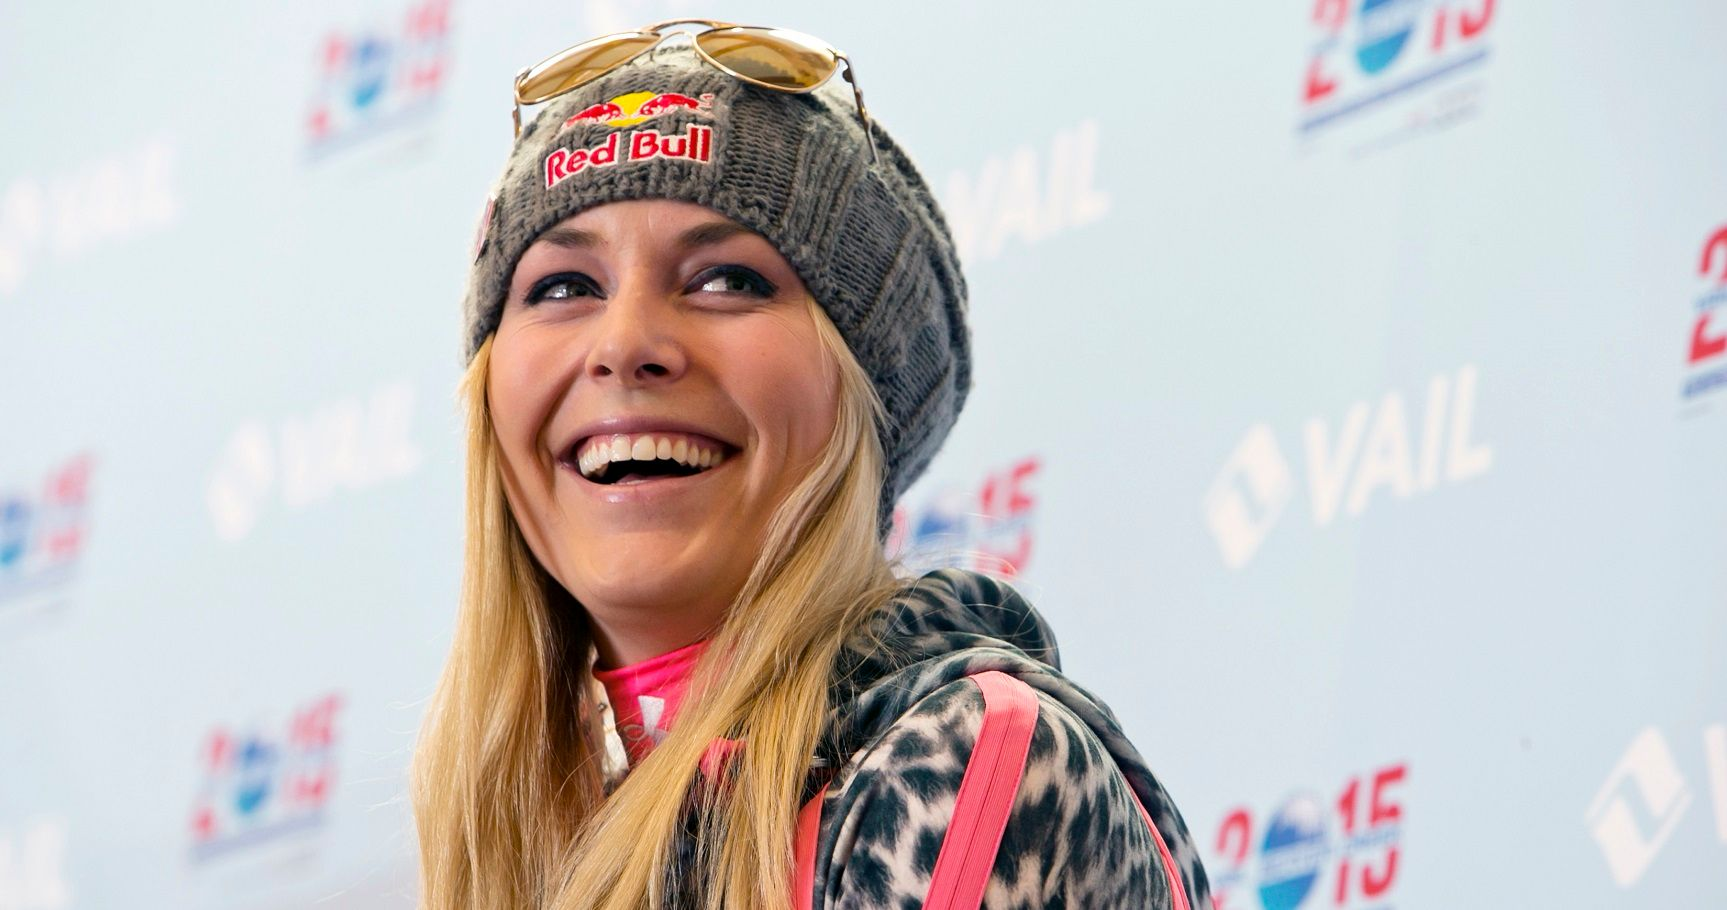 Top 20 Sexiest Female Athletes